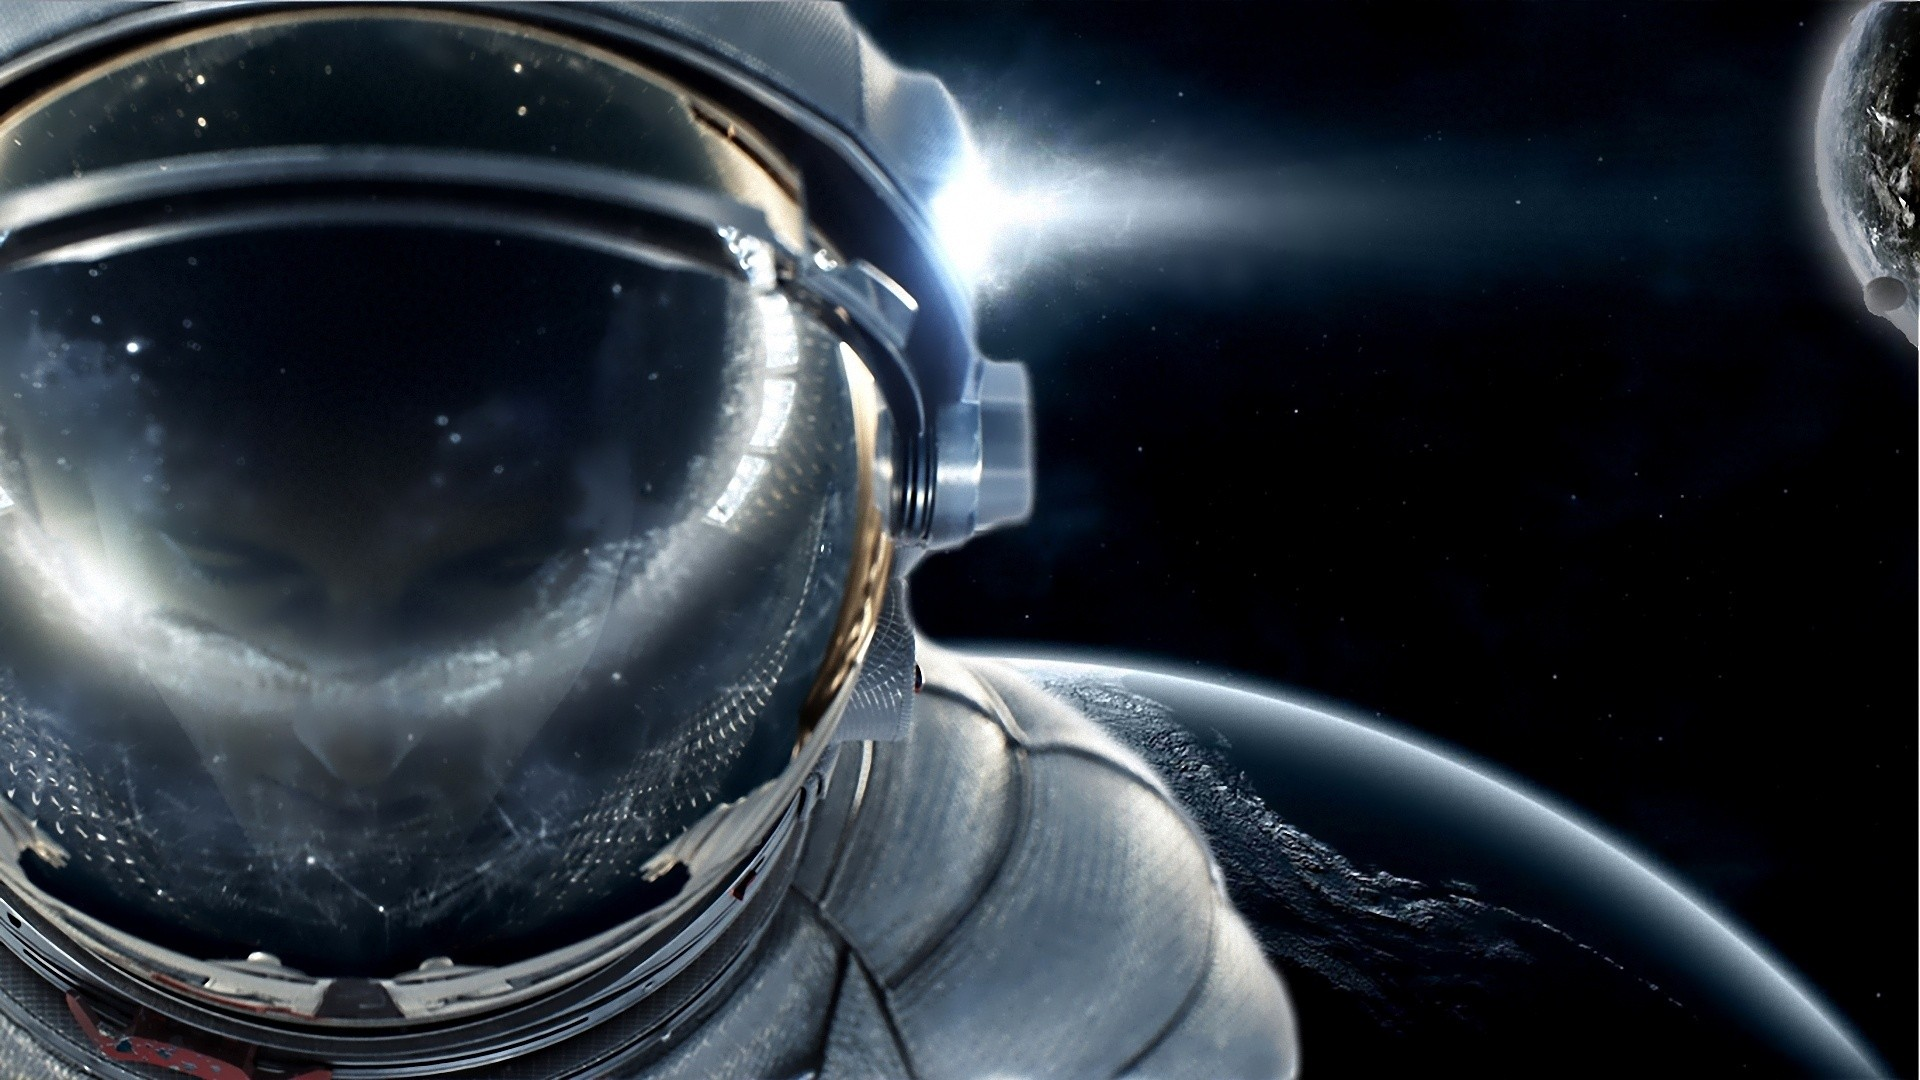 Wallpaper Astronaut Cat with Laser page 3   Pics about space 1920x1080